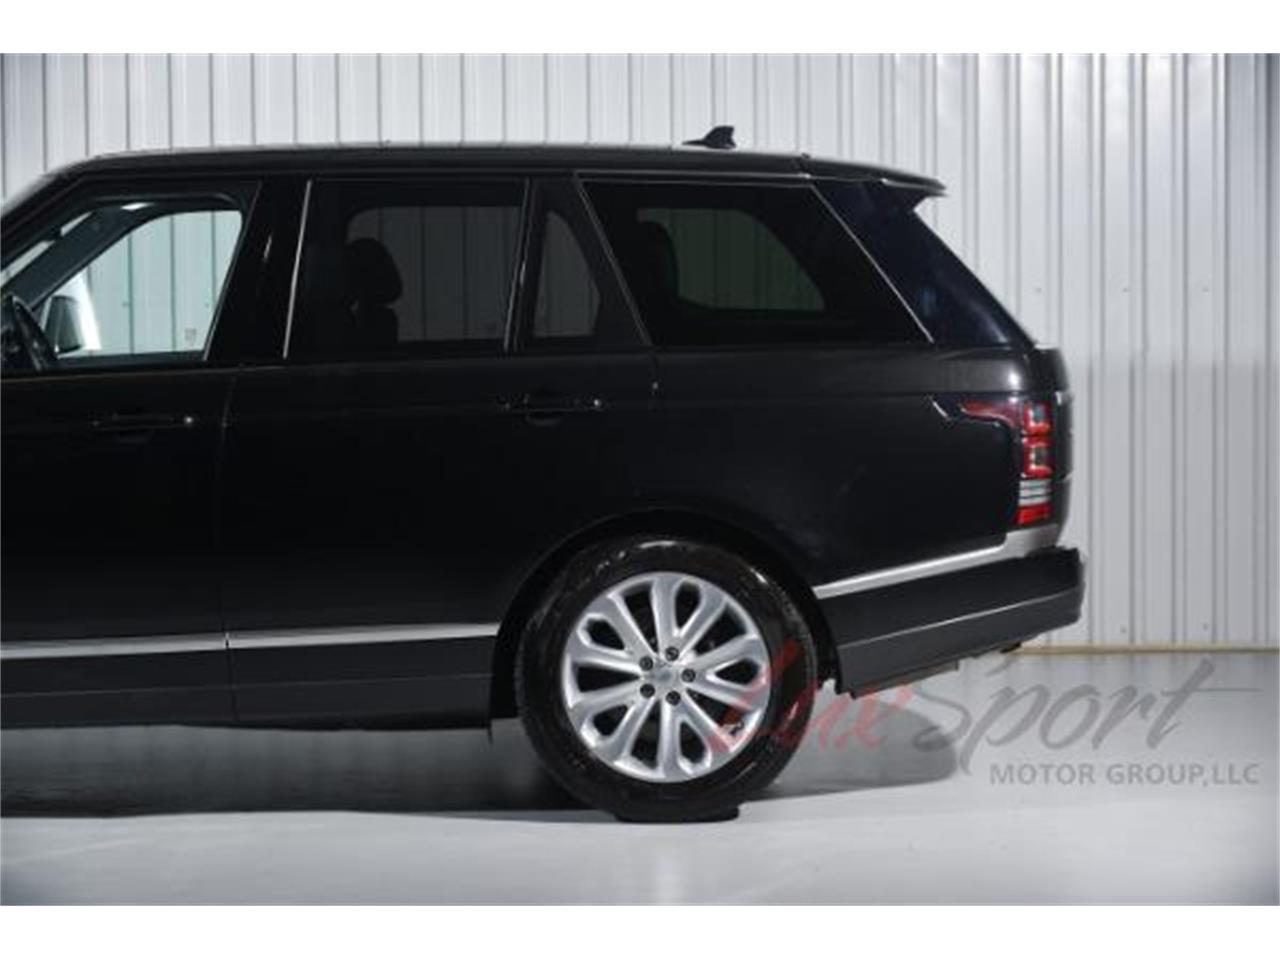 Large Picture of '16 Range Rover HSE located in New Hyde Park New York - $84,995.00 - LA69